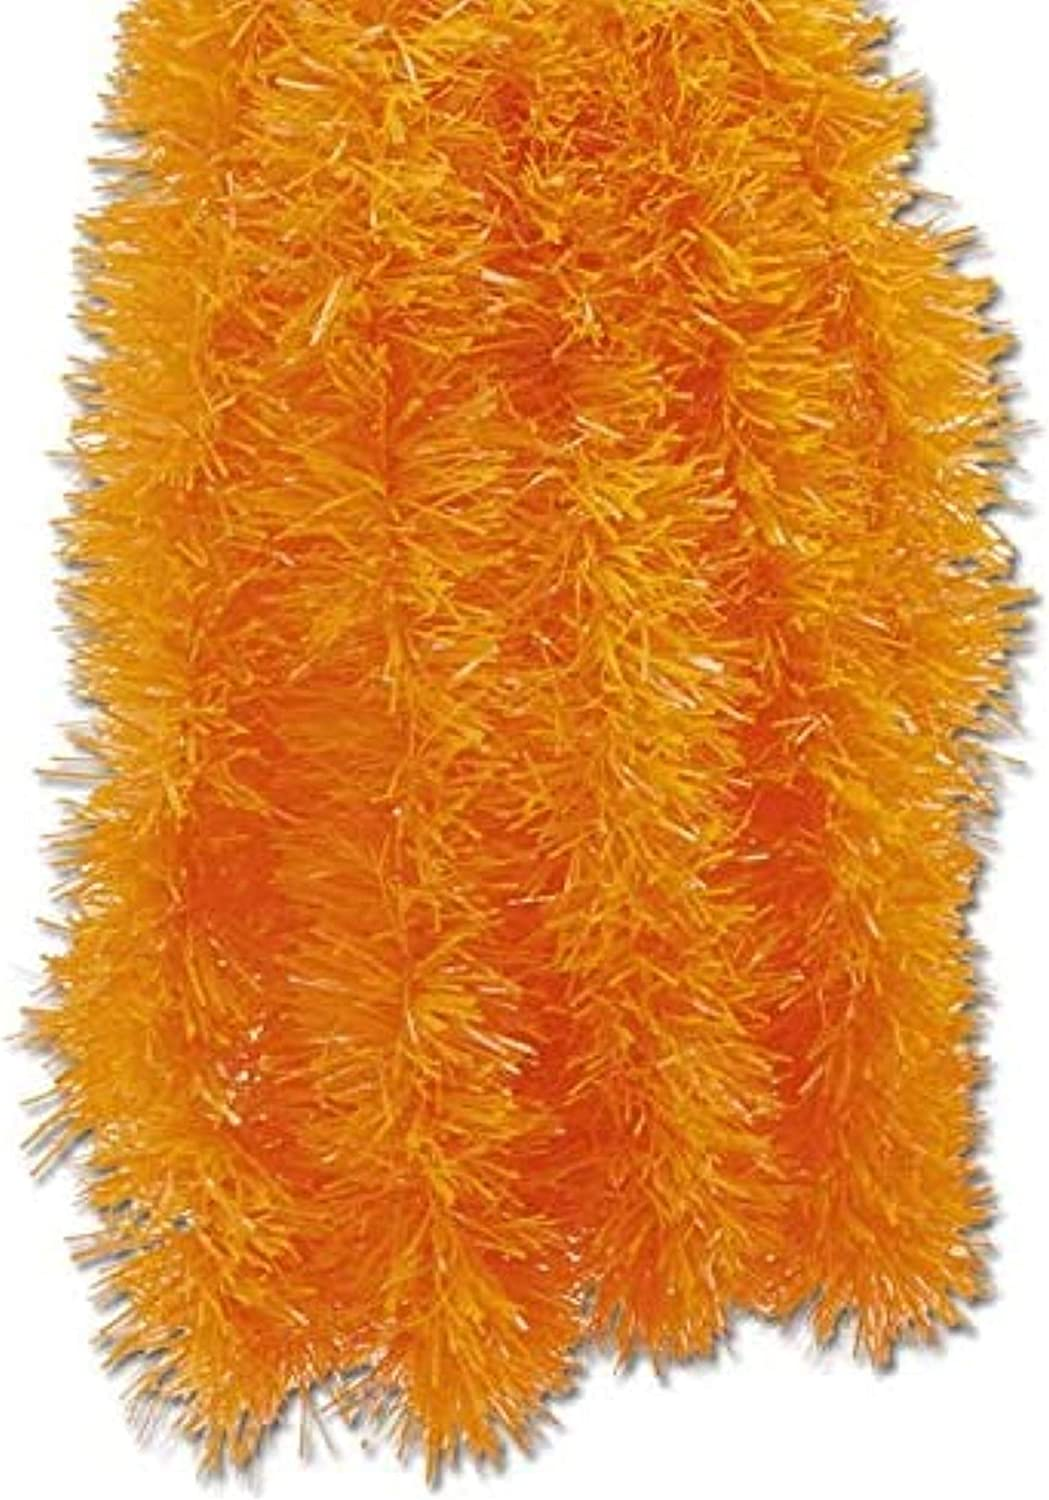 Fix Find - Orange Tinsel Garland (15ft Long x 2.25in Thick) - Elegant Hanging Metallic Holiday Tinsel Garland for Halloween & Party Decorating